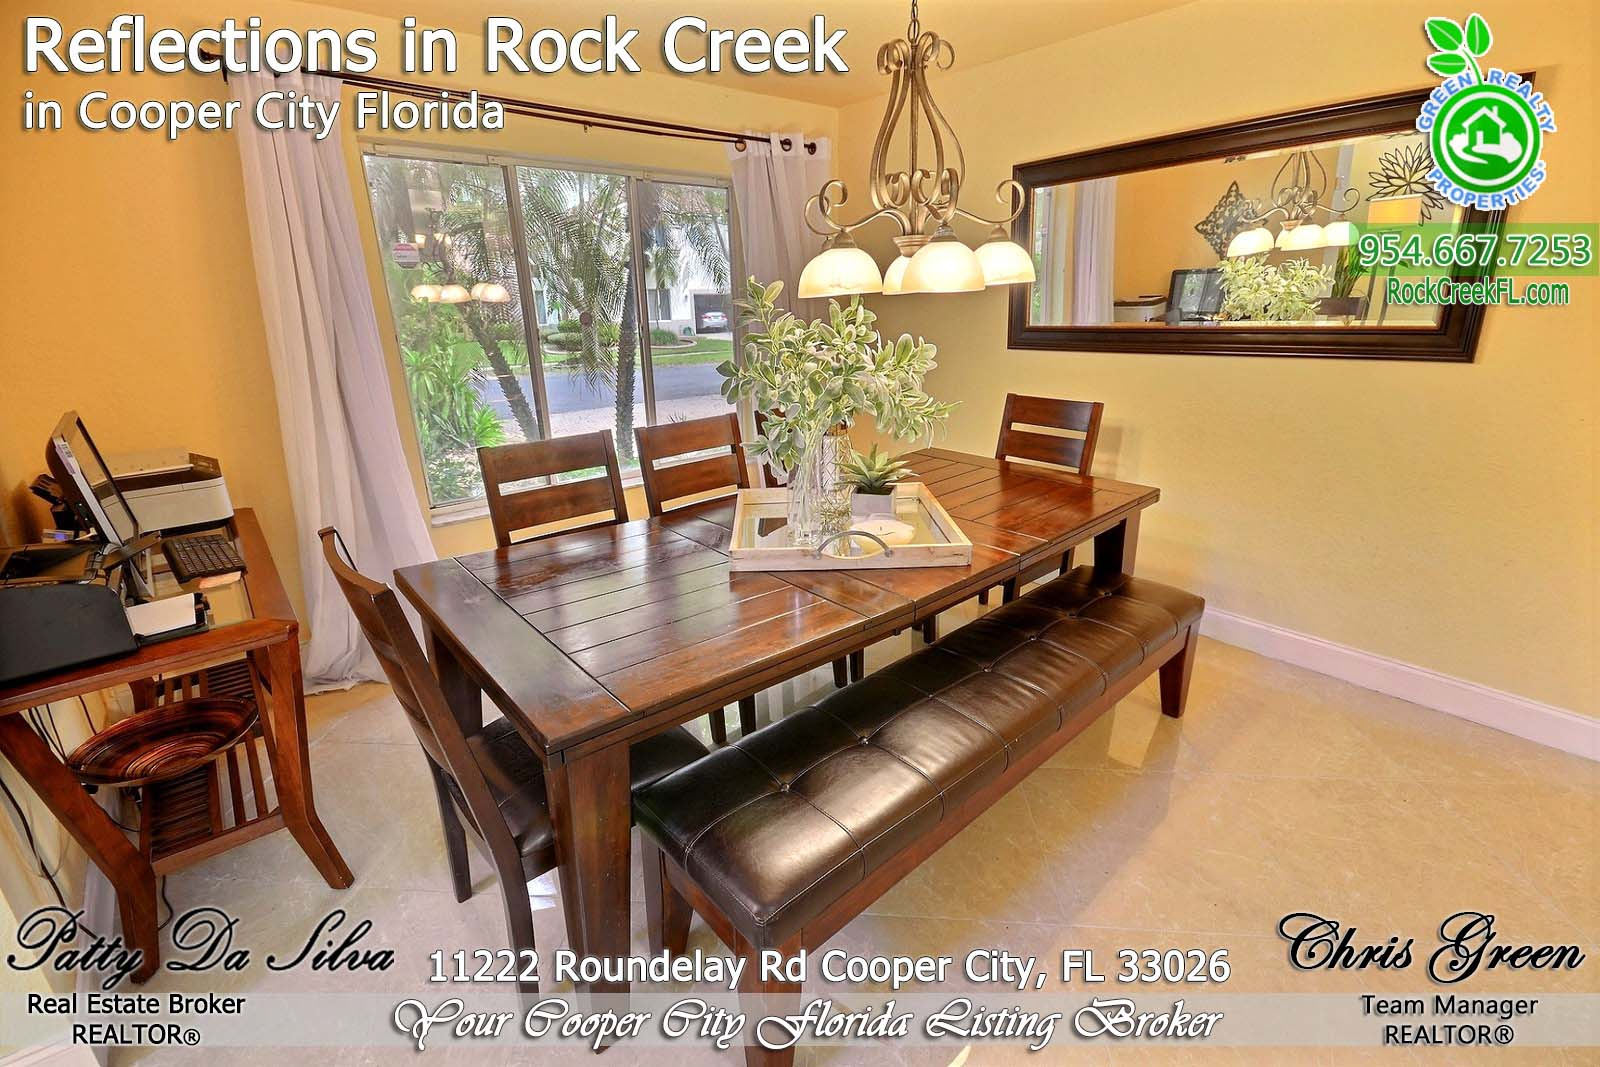 Cooper City Homes For Sale - Reflections in Rock Creek Homes Fo Sale (15)